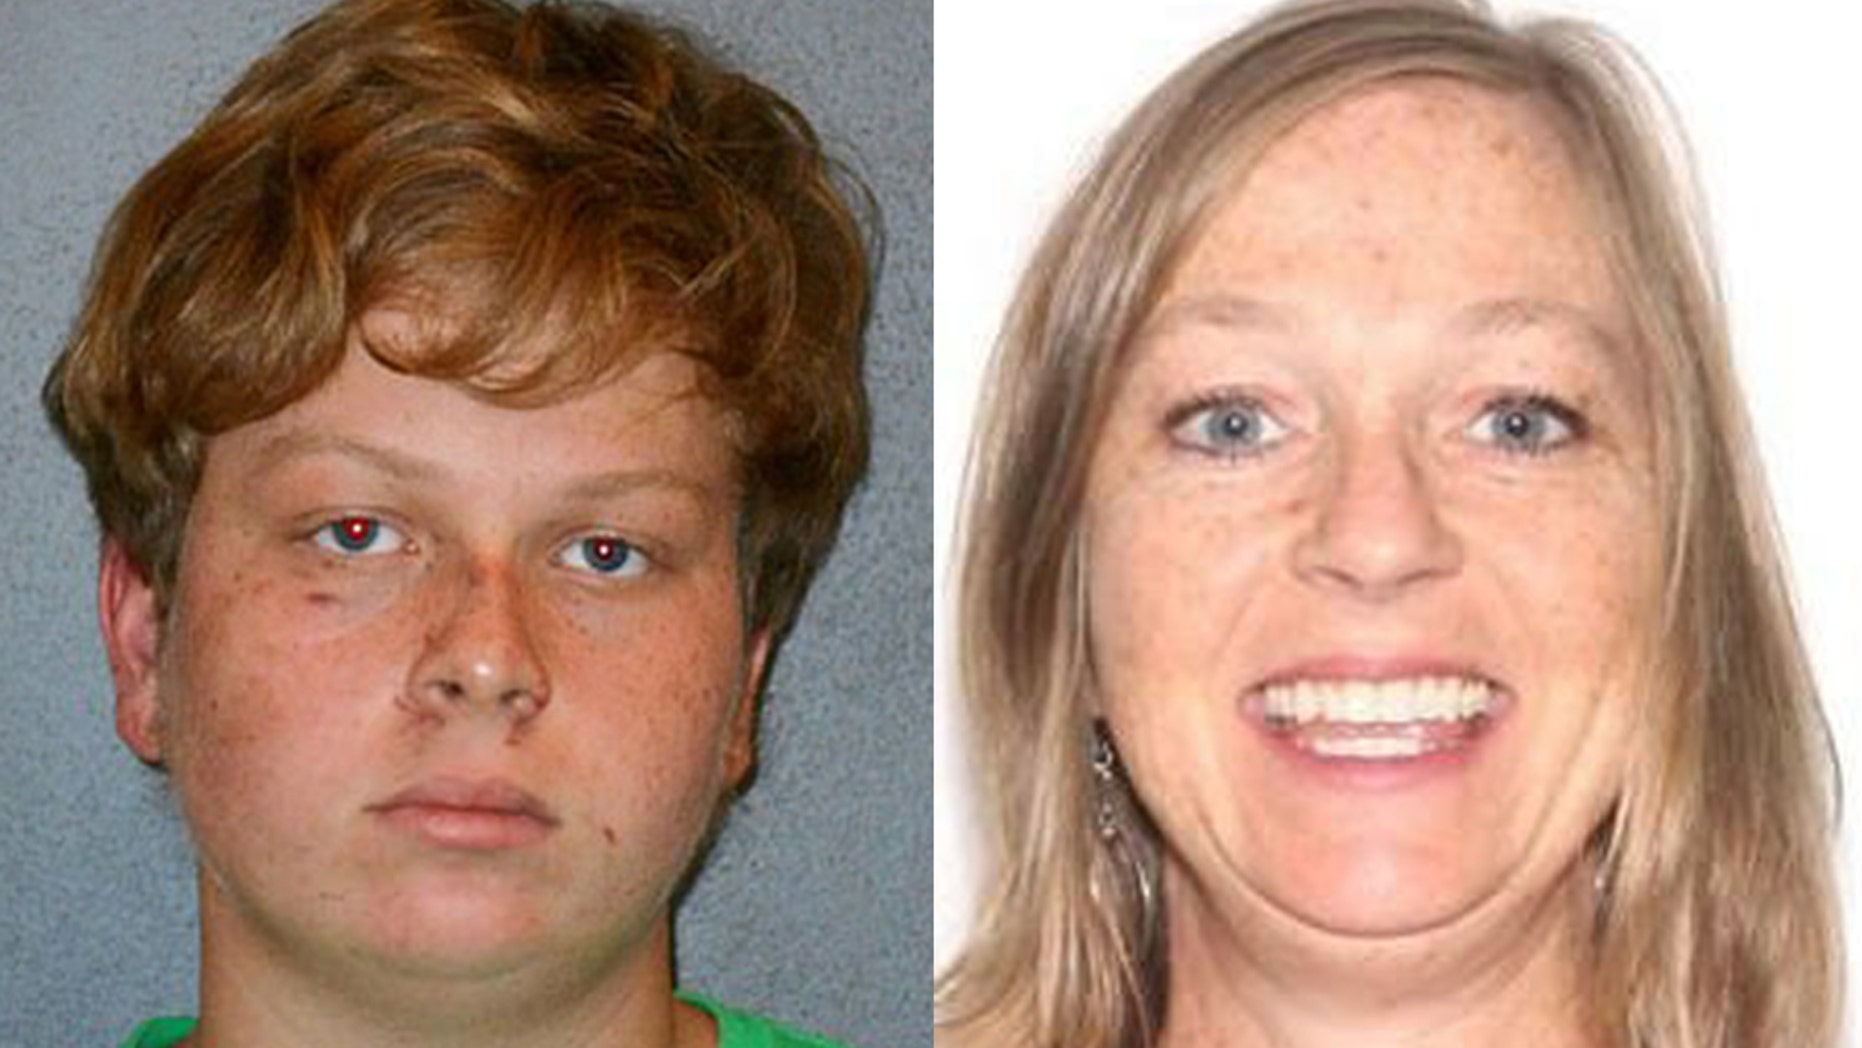 'Sociopath' boy arrested for killing mom over bad grade